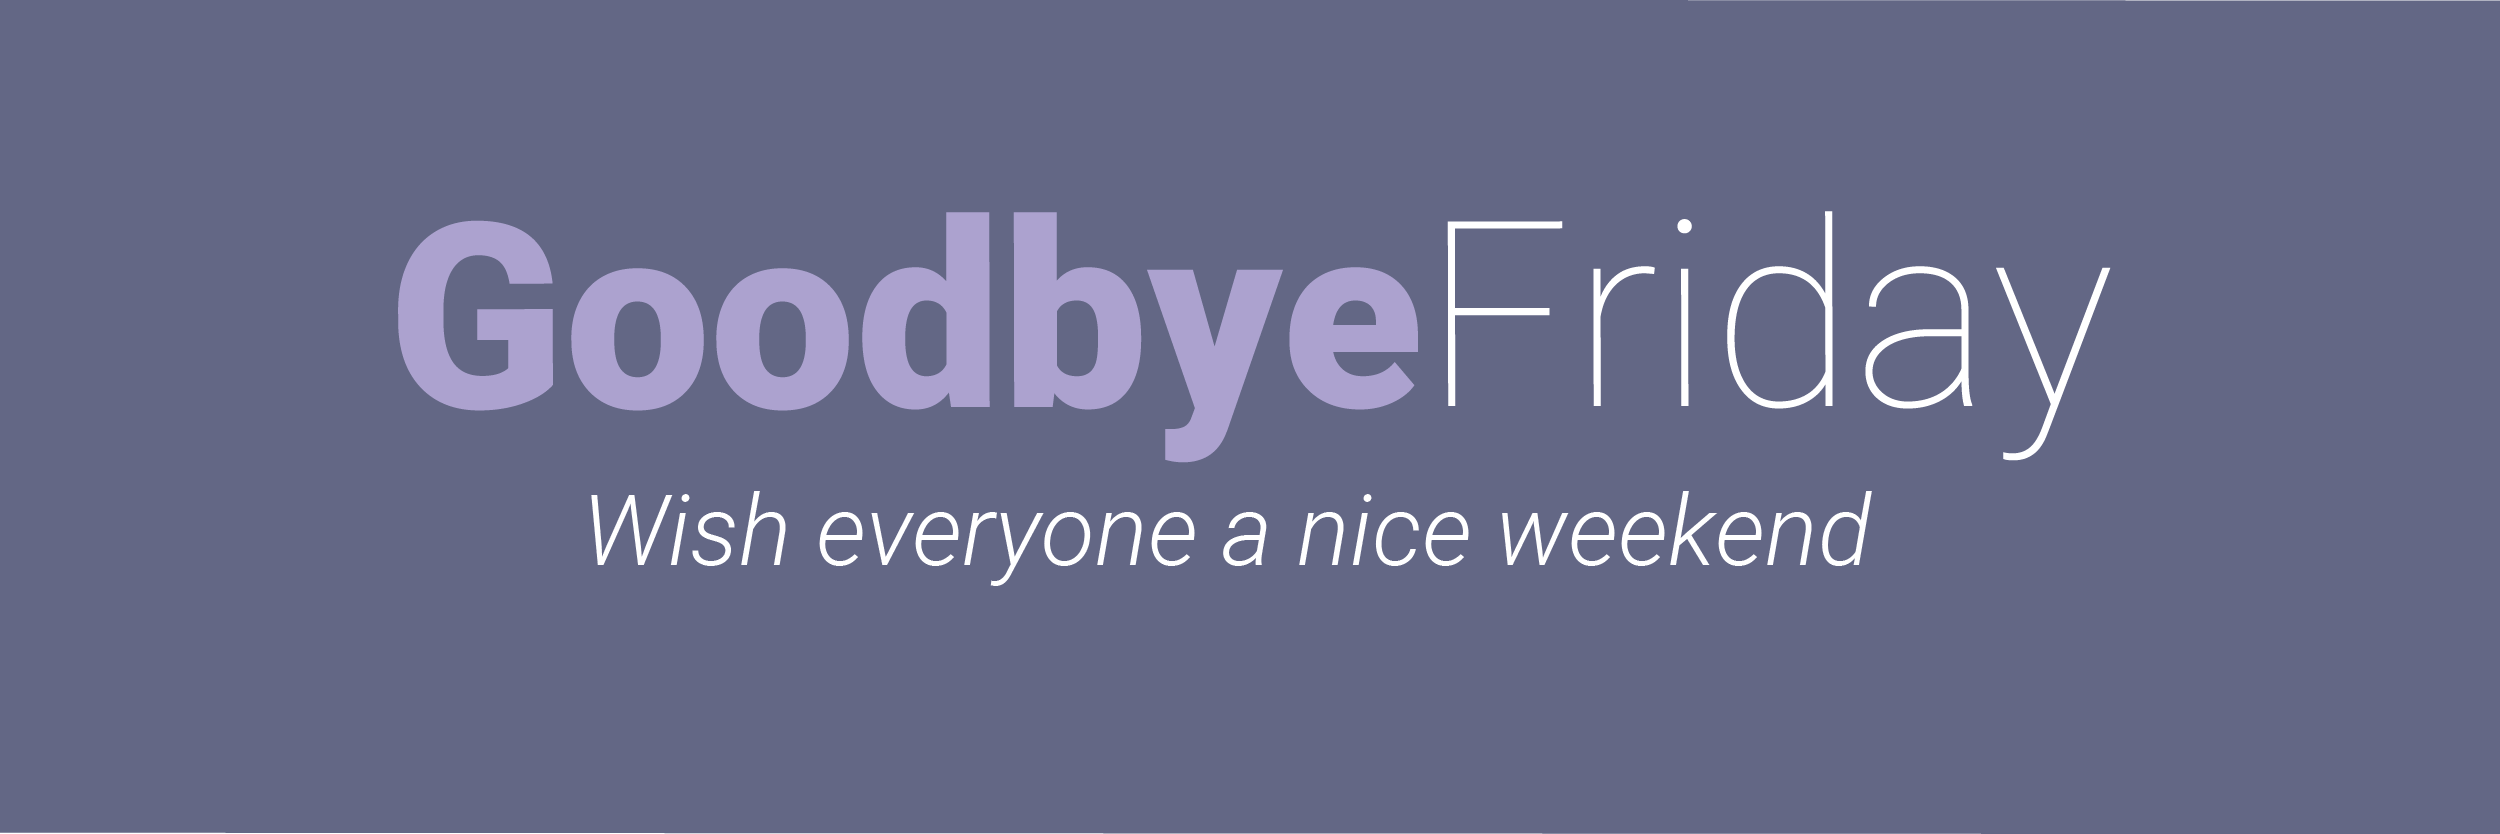 Goodbye Friday-01